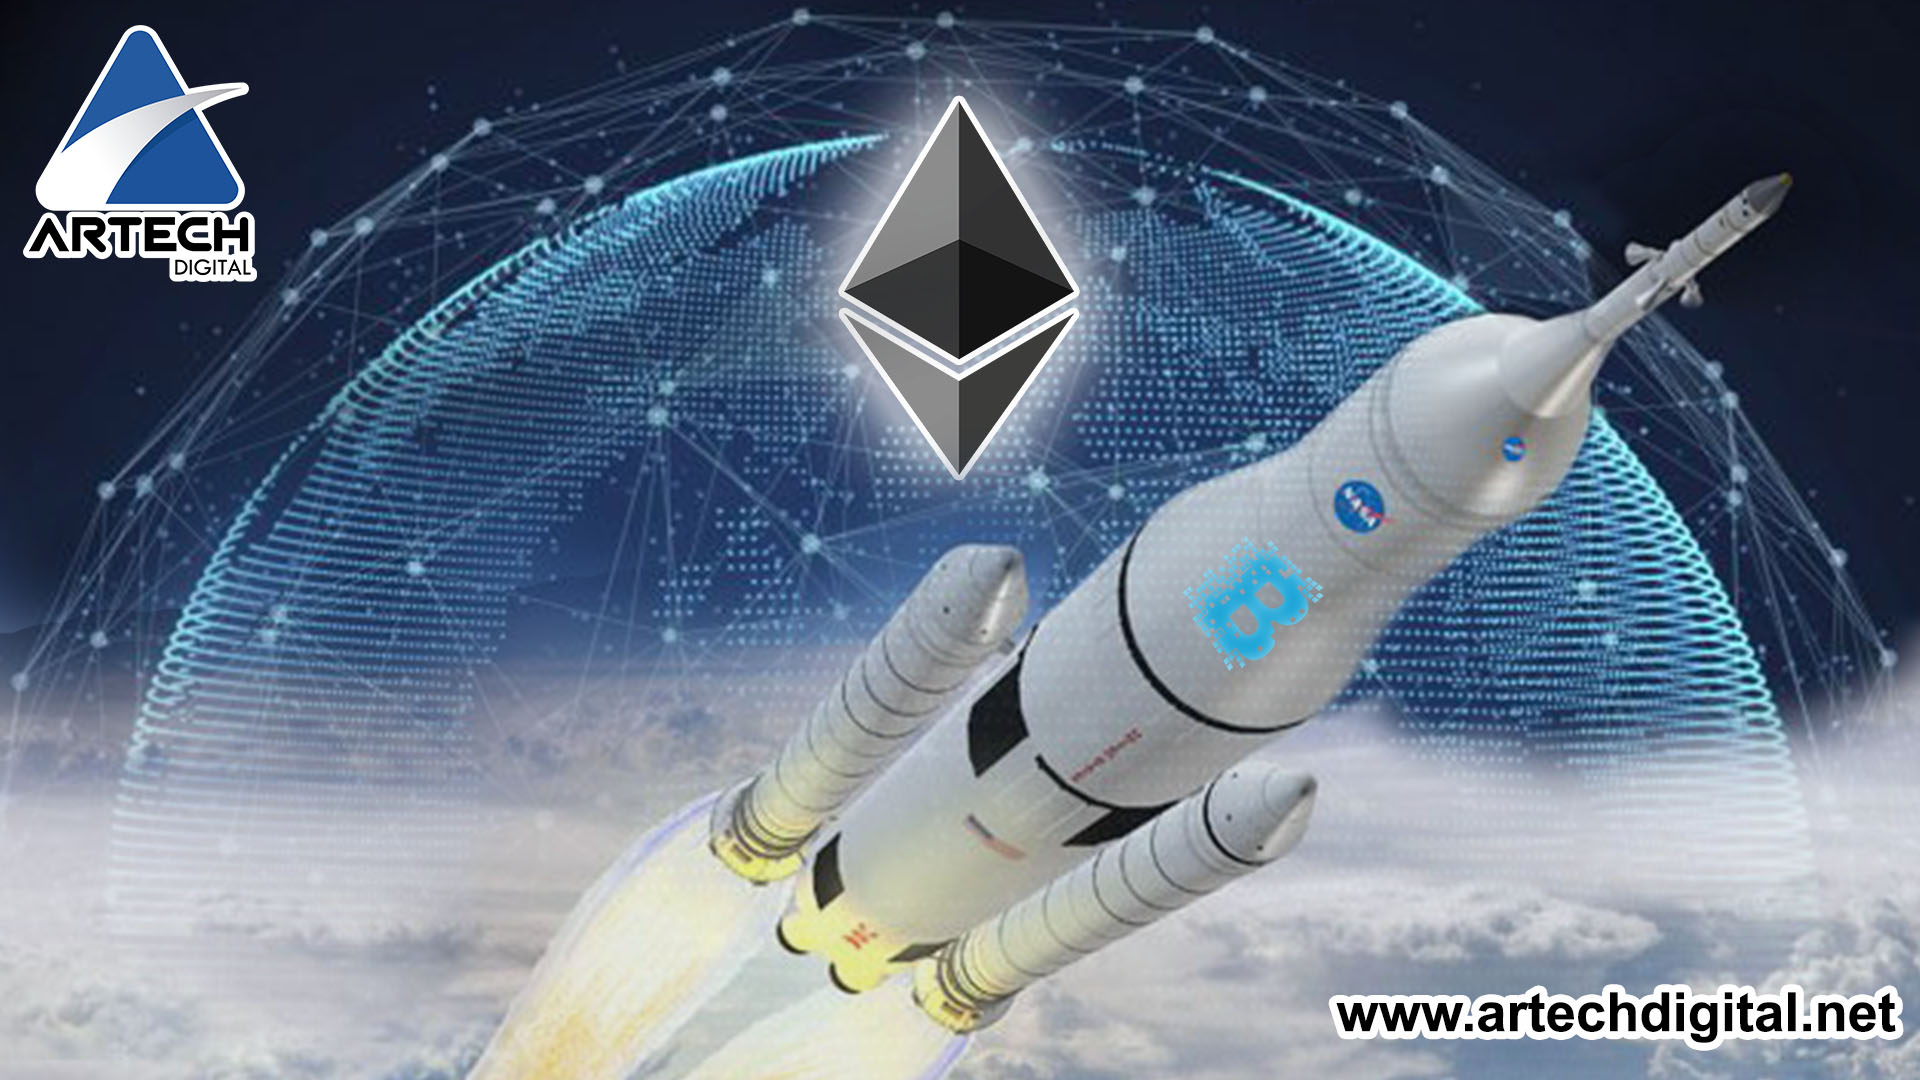 La NASA - naves espaciales - blockchain - artech digital